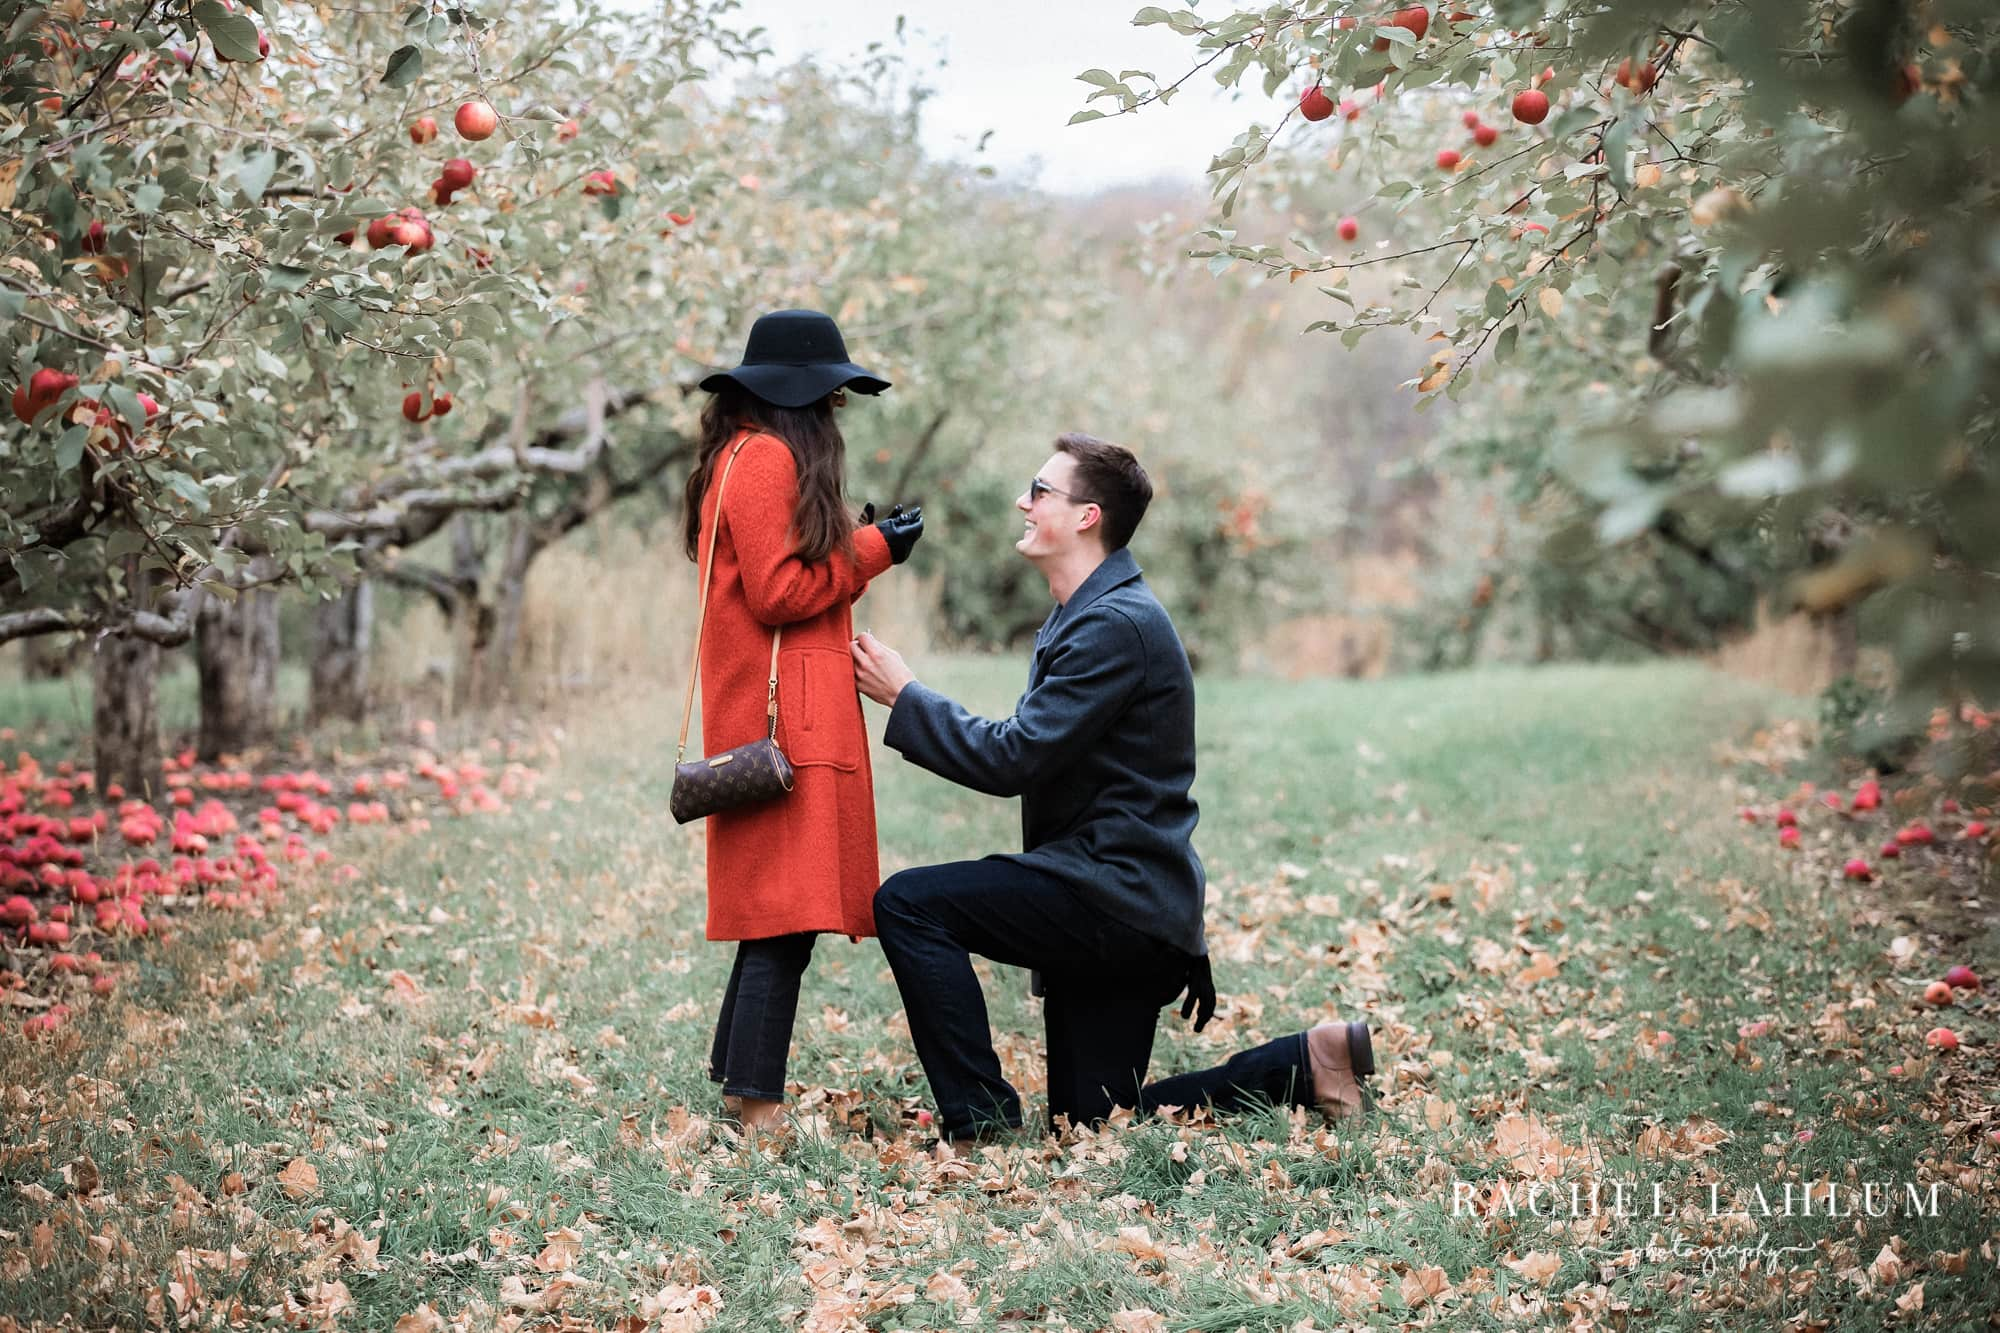 Man on one knee in apple orchard proposing to girlfriend.